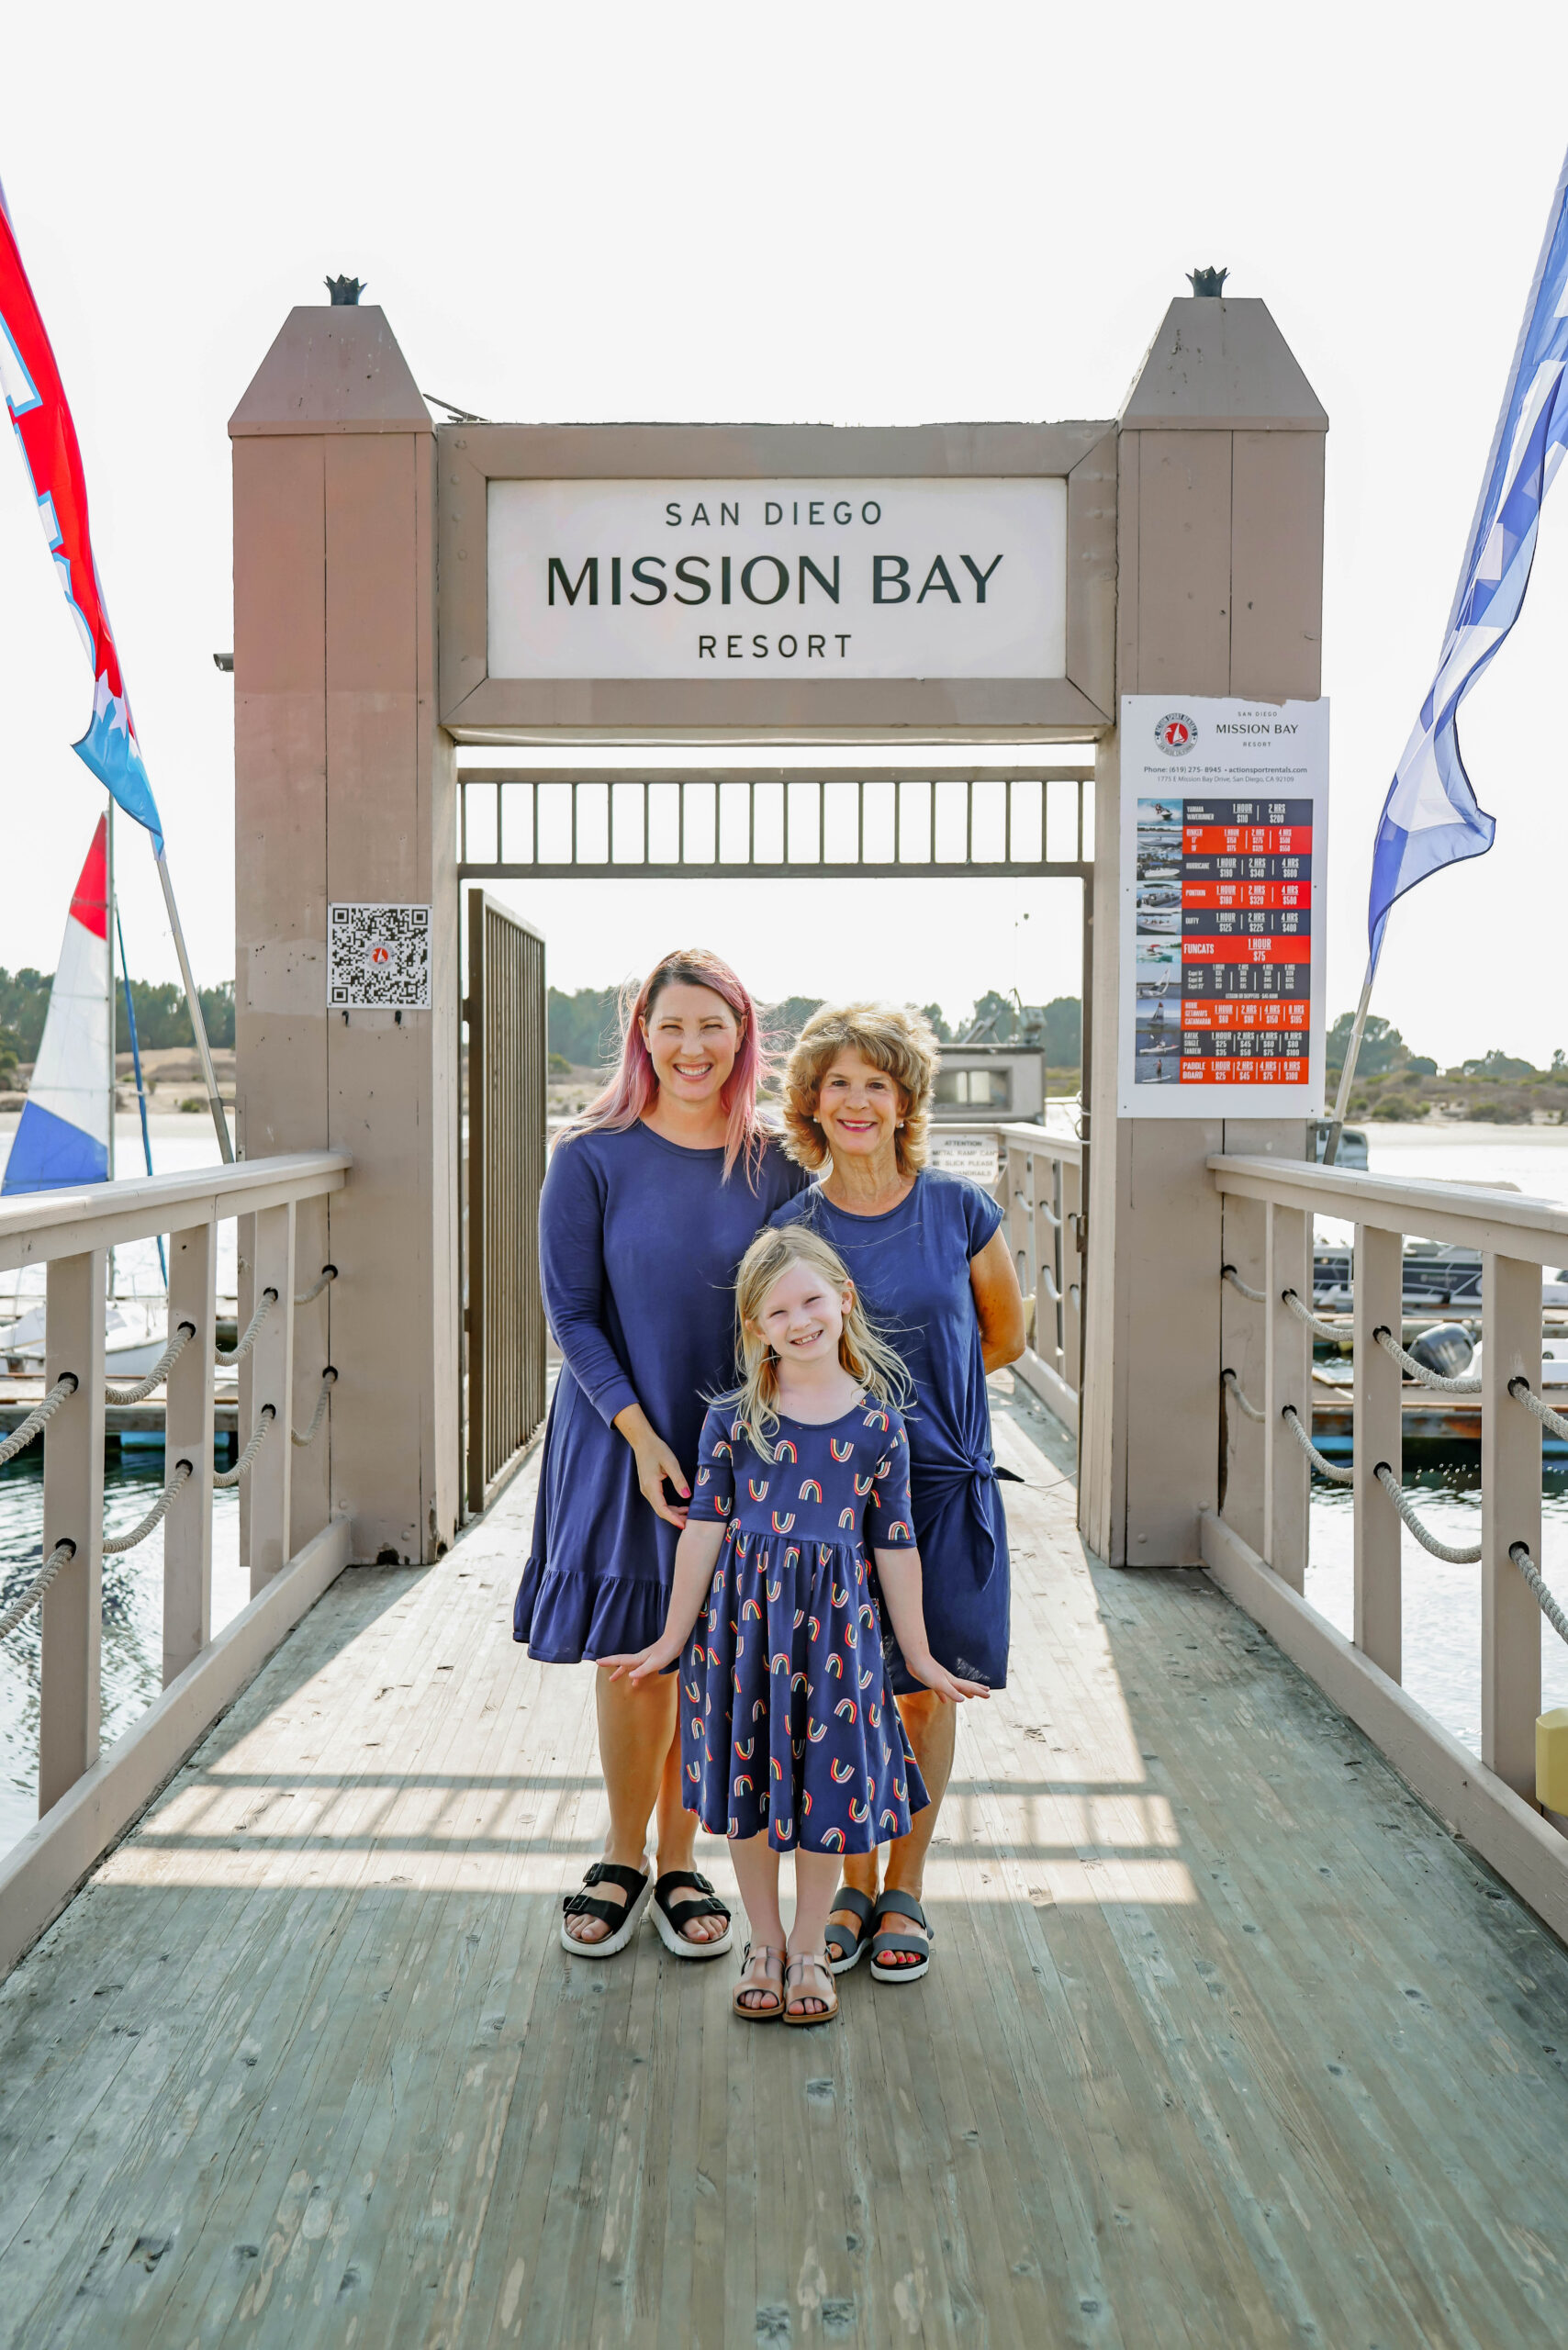 Planning a stay at the Mission Bay Resort? This is everything you need to know for a San Diego family staycation!